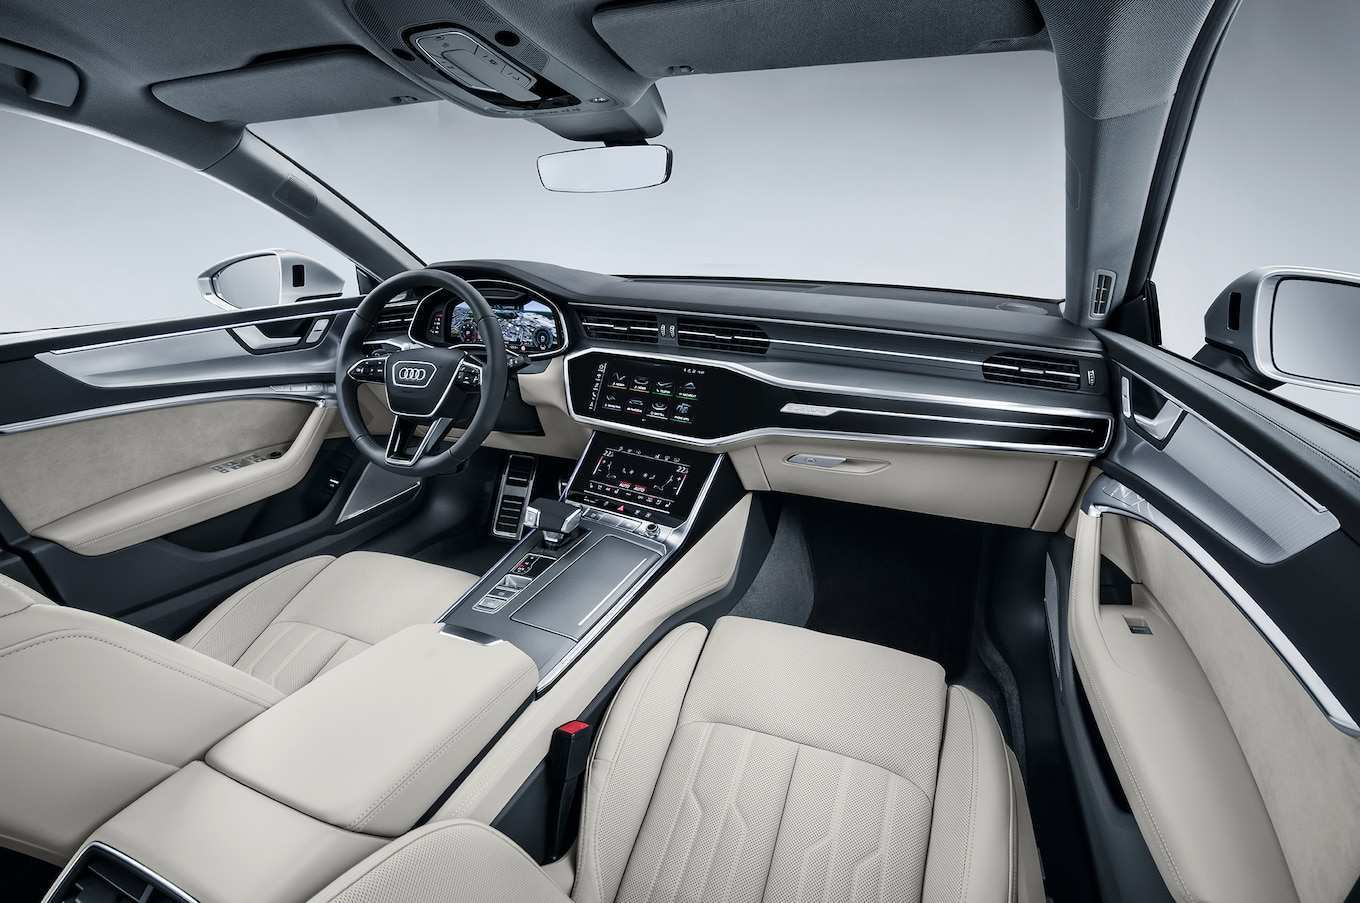 69 Concept of 2019 Audi A7 Msrp Performance and New Engine with 2019 Audi A7 Msrp